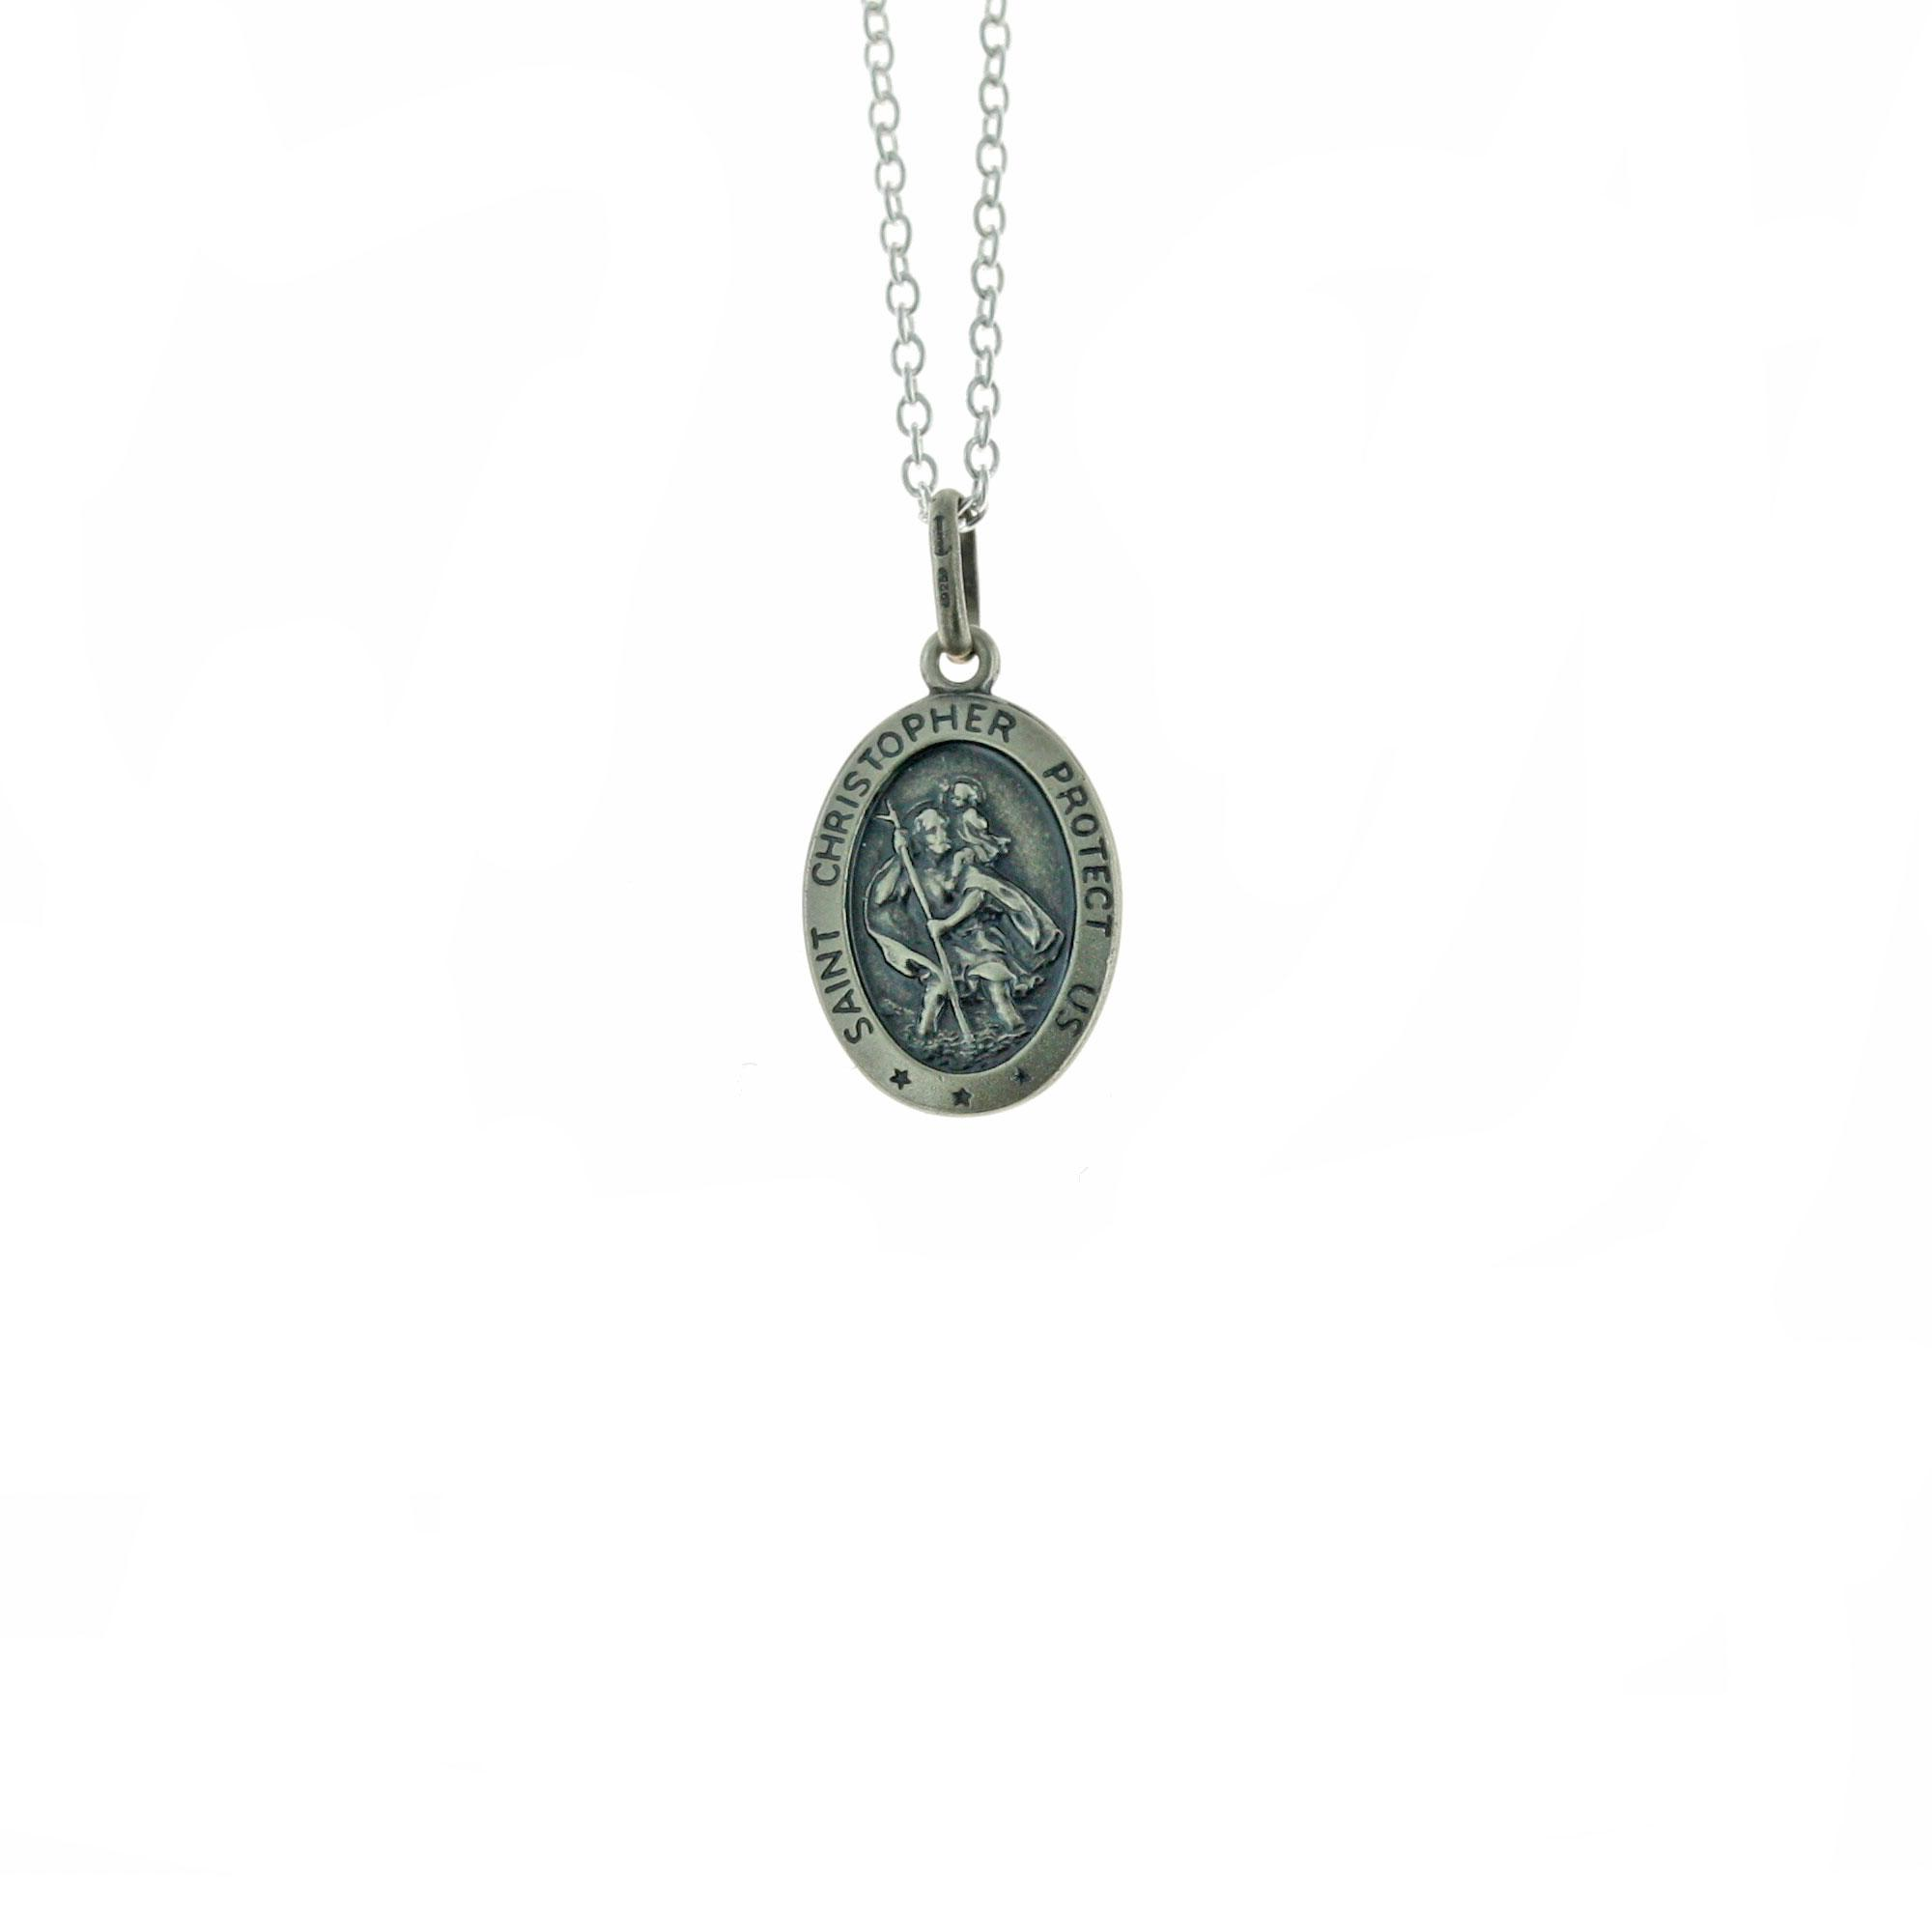 A collection of St Christopher Pendants and Necklaces